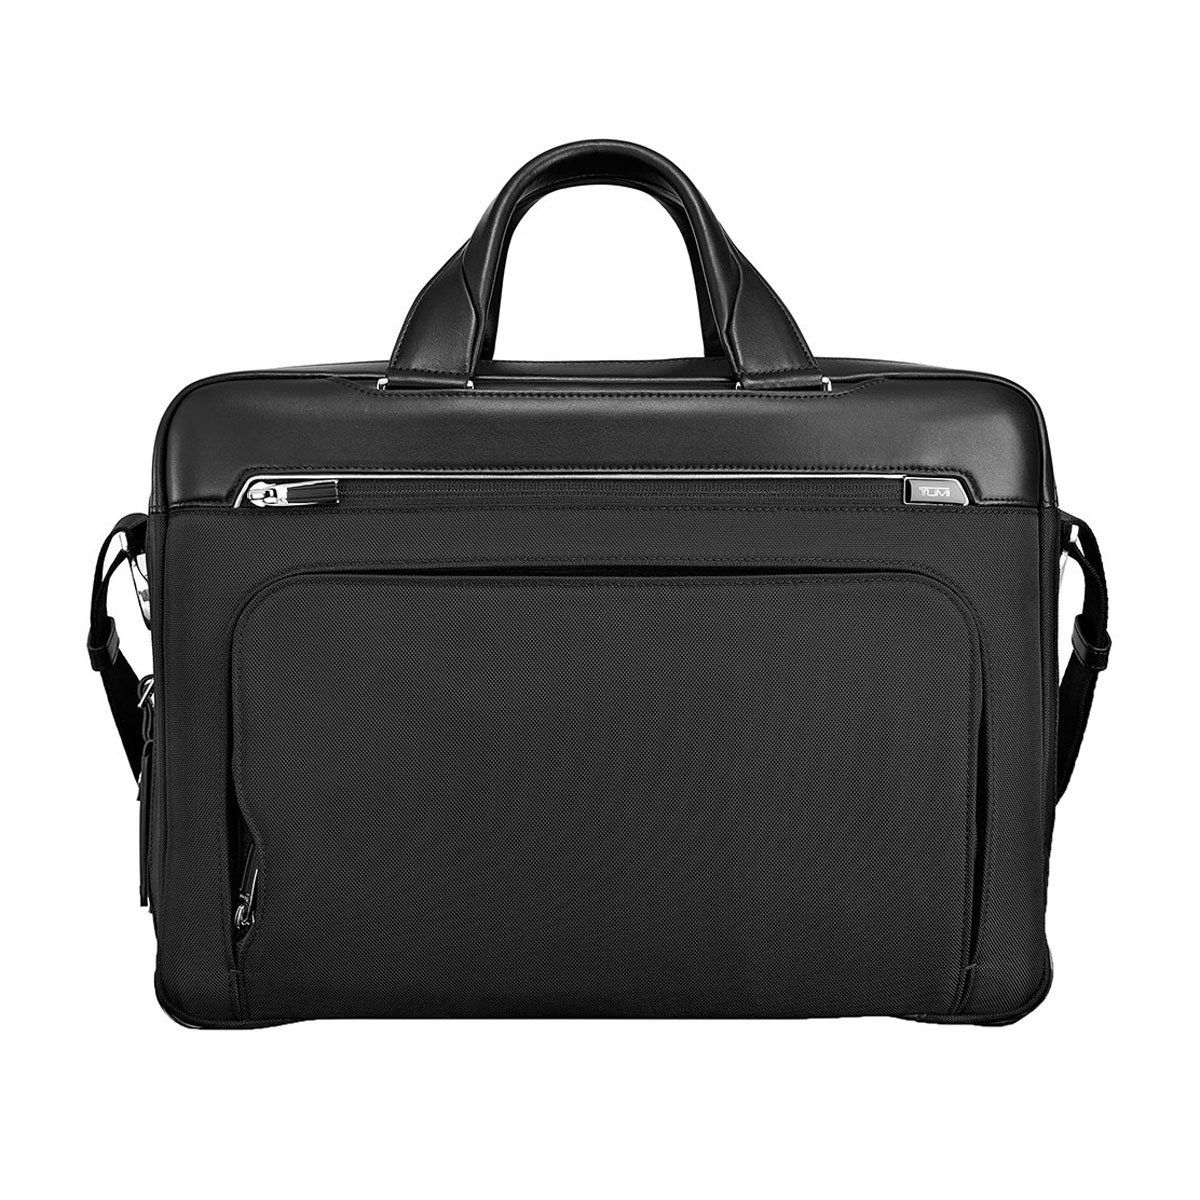 154484719869 Tumi Arrive Richmond Travel Kit Toiletry bag in Black Nylon